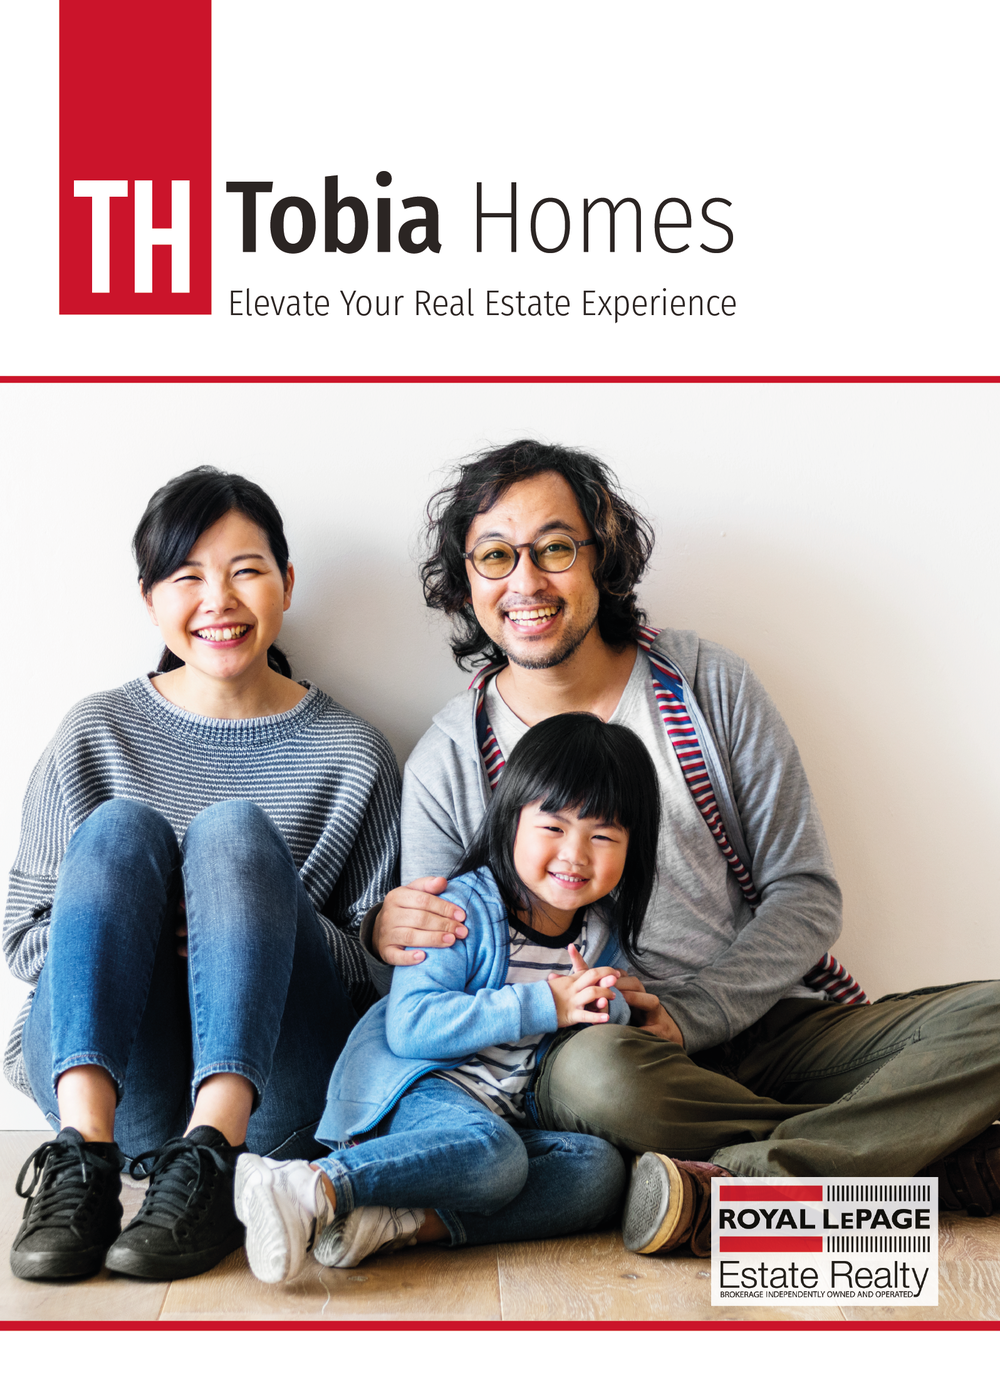 Tobia_Homes_Presentation-Digital_Download-BUYERS-0618_Front.png